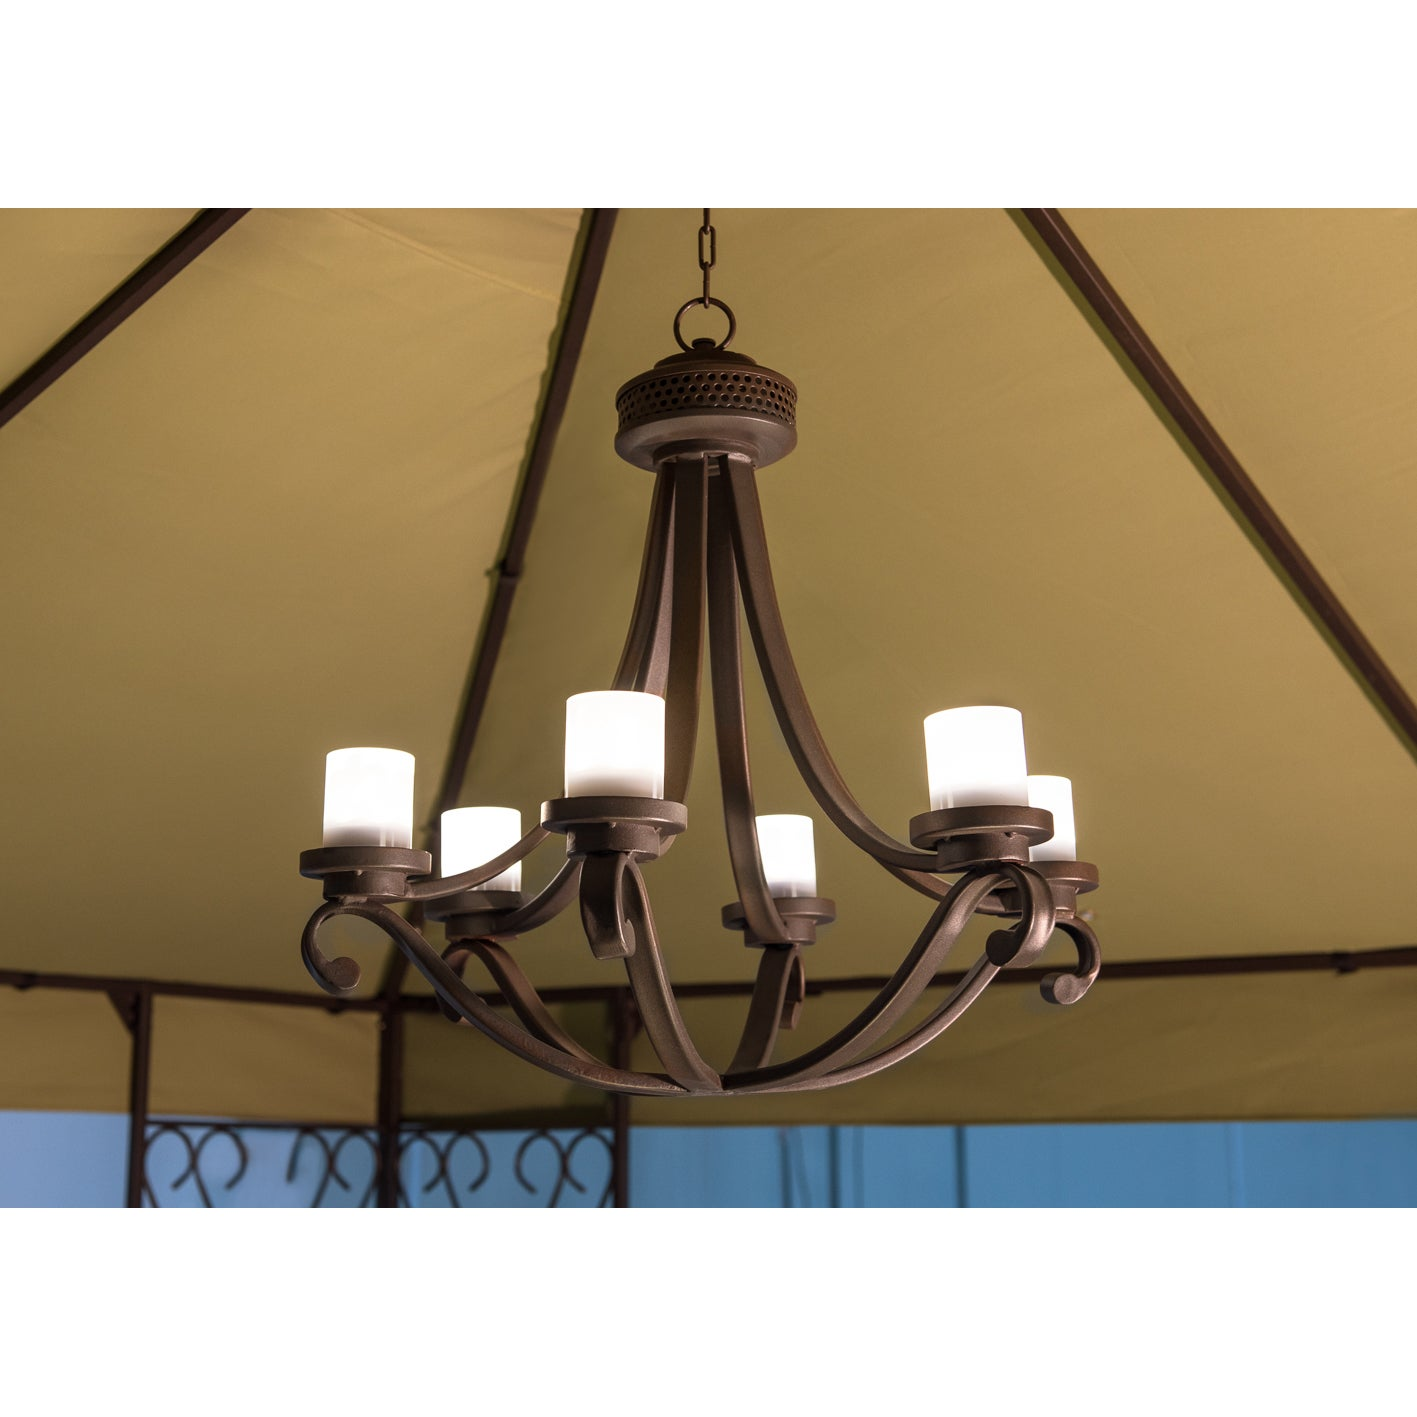 Sunjoy Flint 6 Light Battery Powered LED Chandelier With Remote